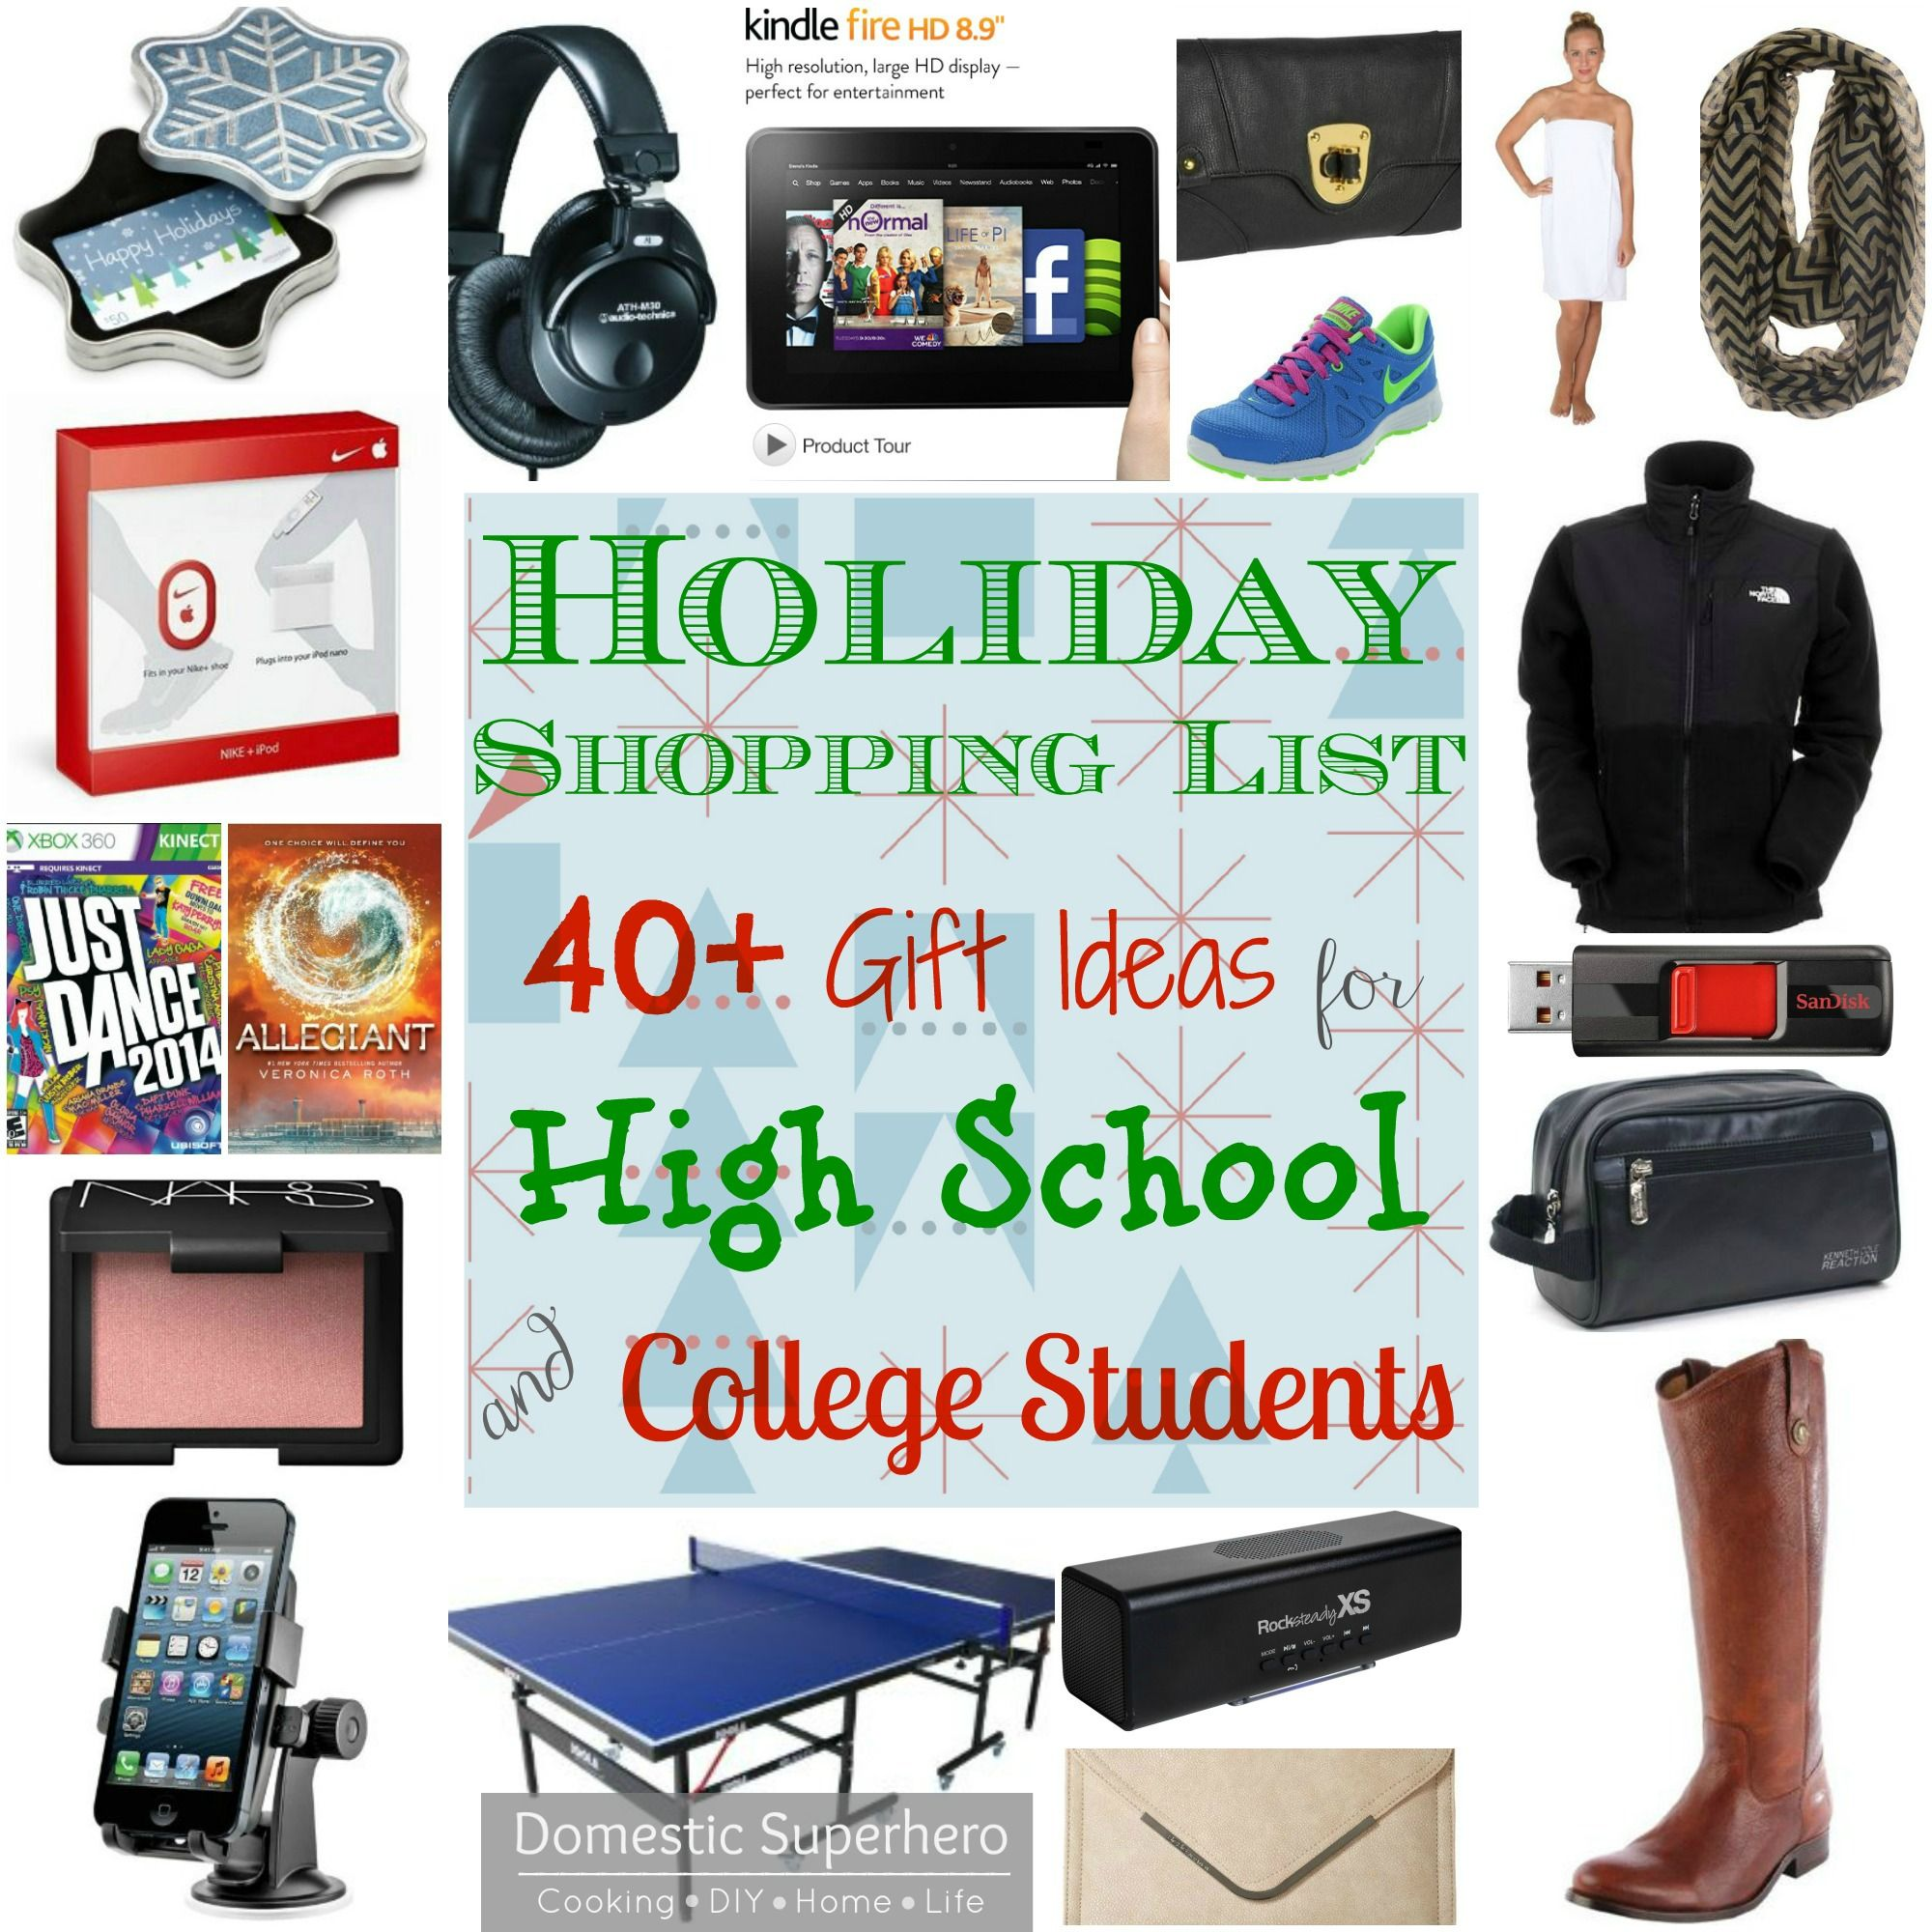 Holiday Shopping List: 40+ Gift Ideas for High School and College ...